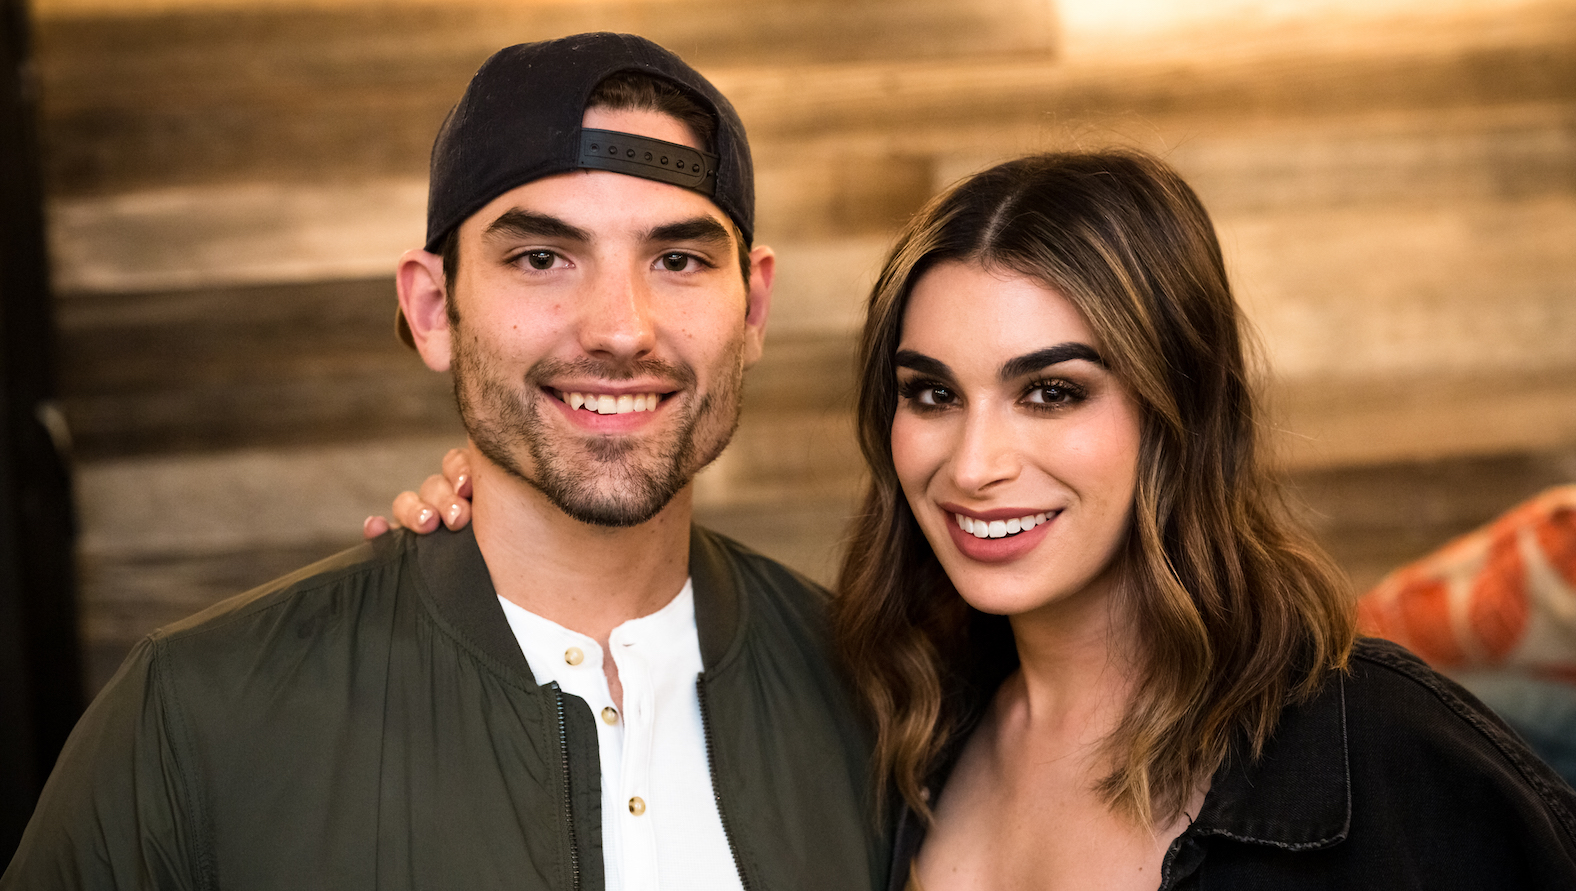 Bachelor Nation Alums Ashley Iaconetti and Jared Haibon Reveal They Want Kids 'A Year From Now'